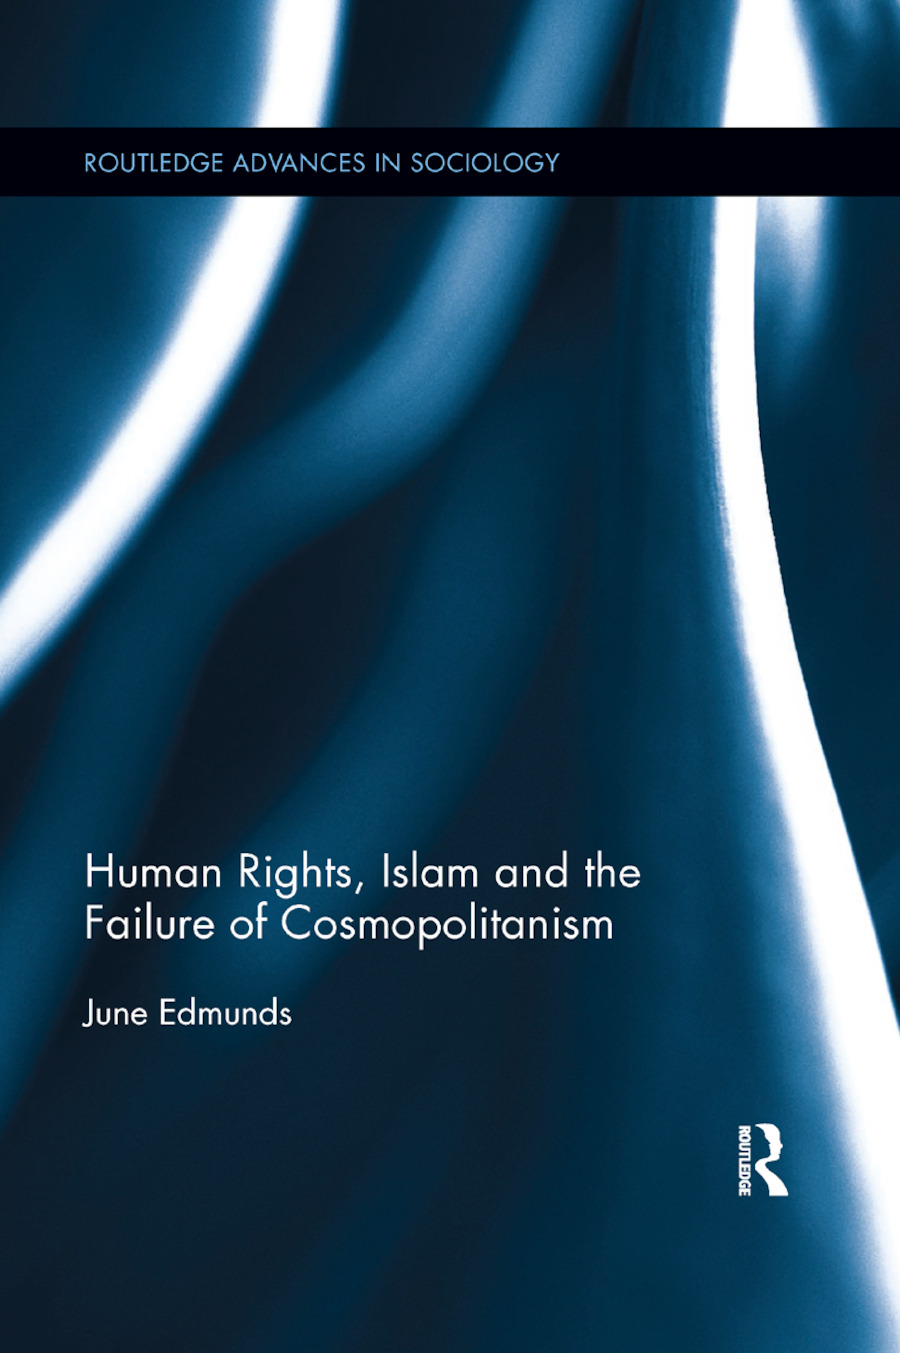 Human Rights, Islam and the Failure of Cosmopolitanism book cover